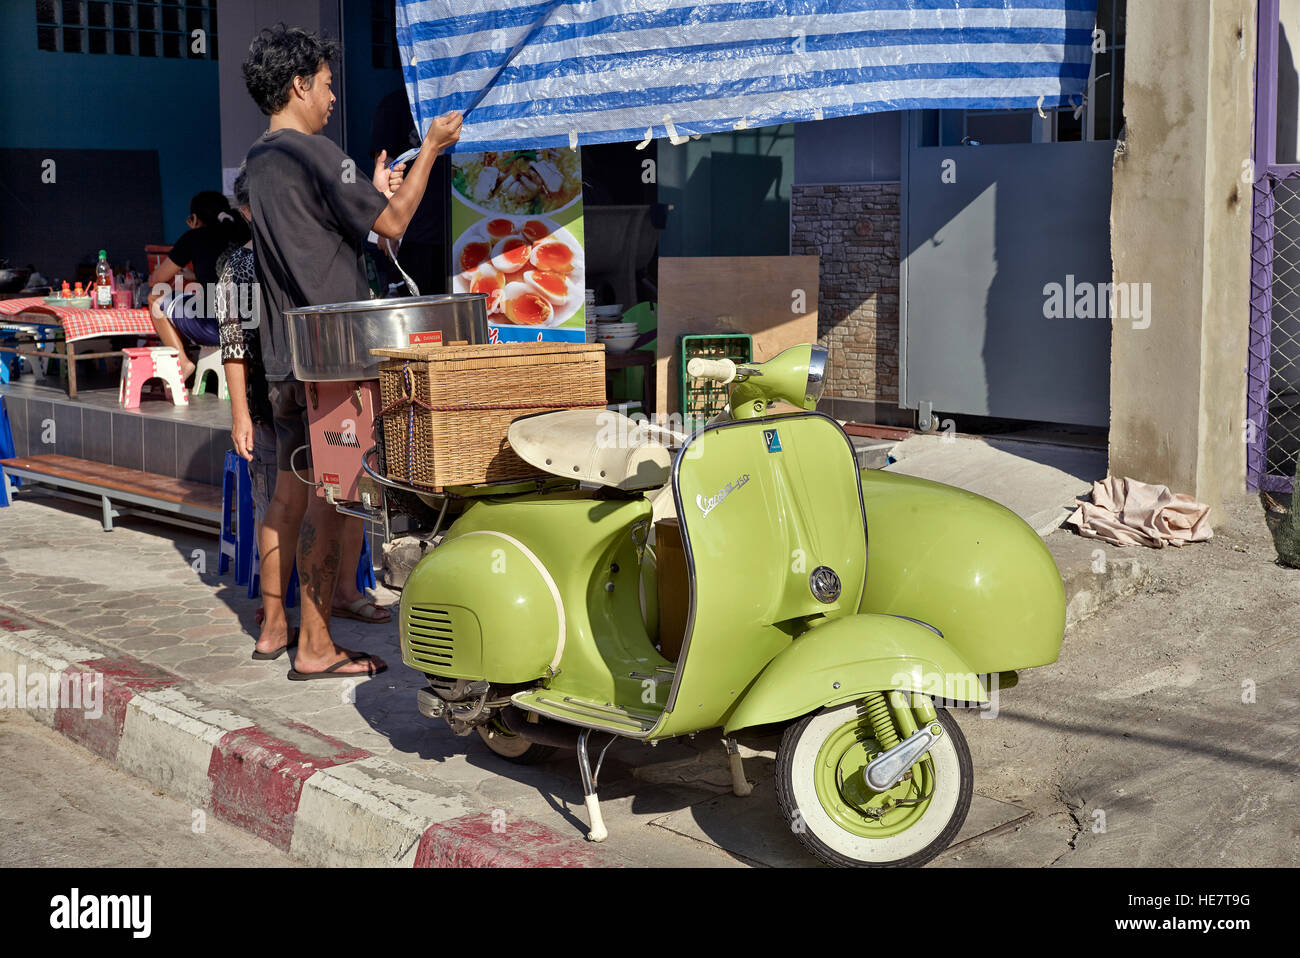 List Of Synonyms And Antonyms Of The Word Vespa Used